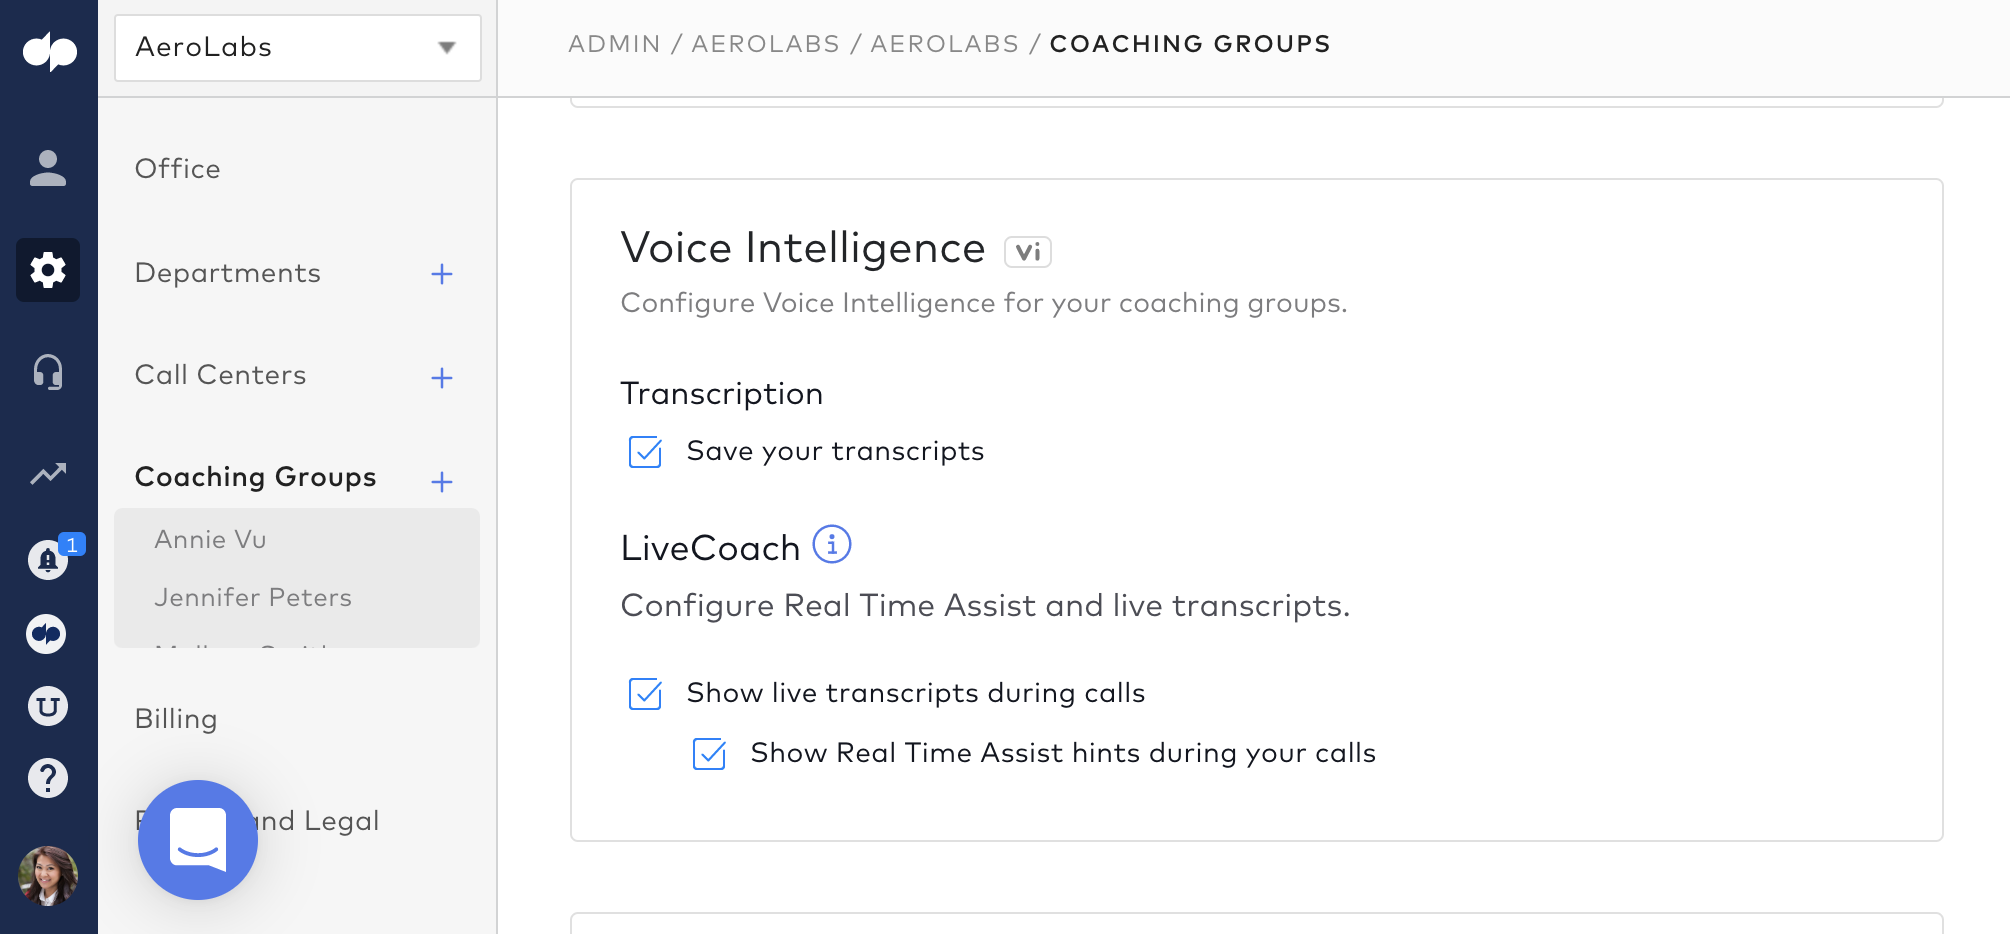 _Helpdesk__Vi_Coaching_Group_Settings.png